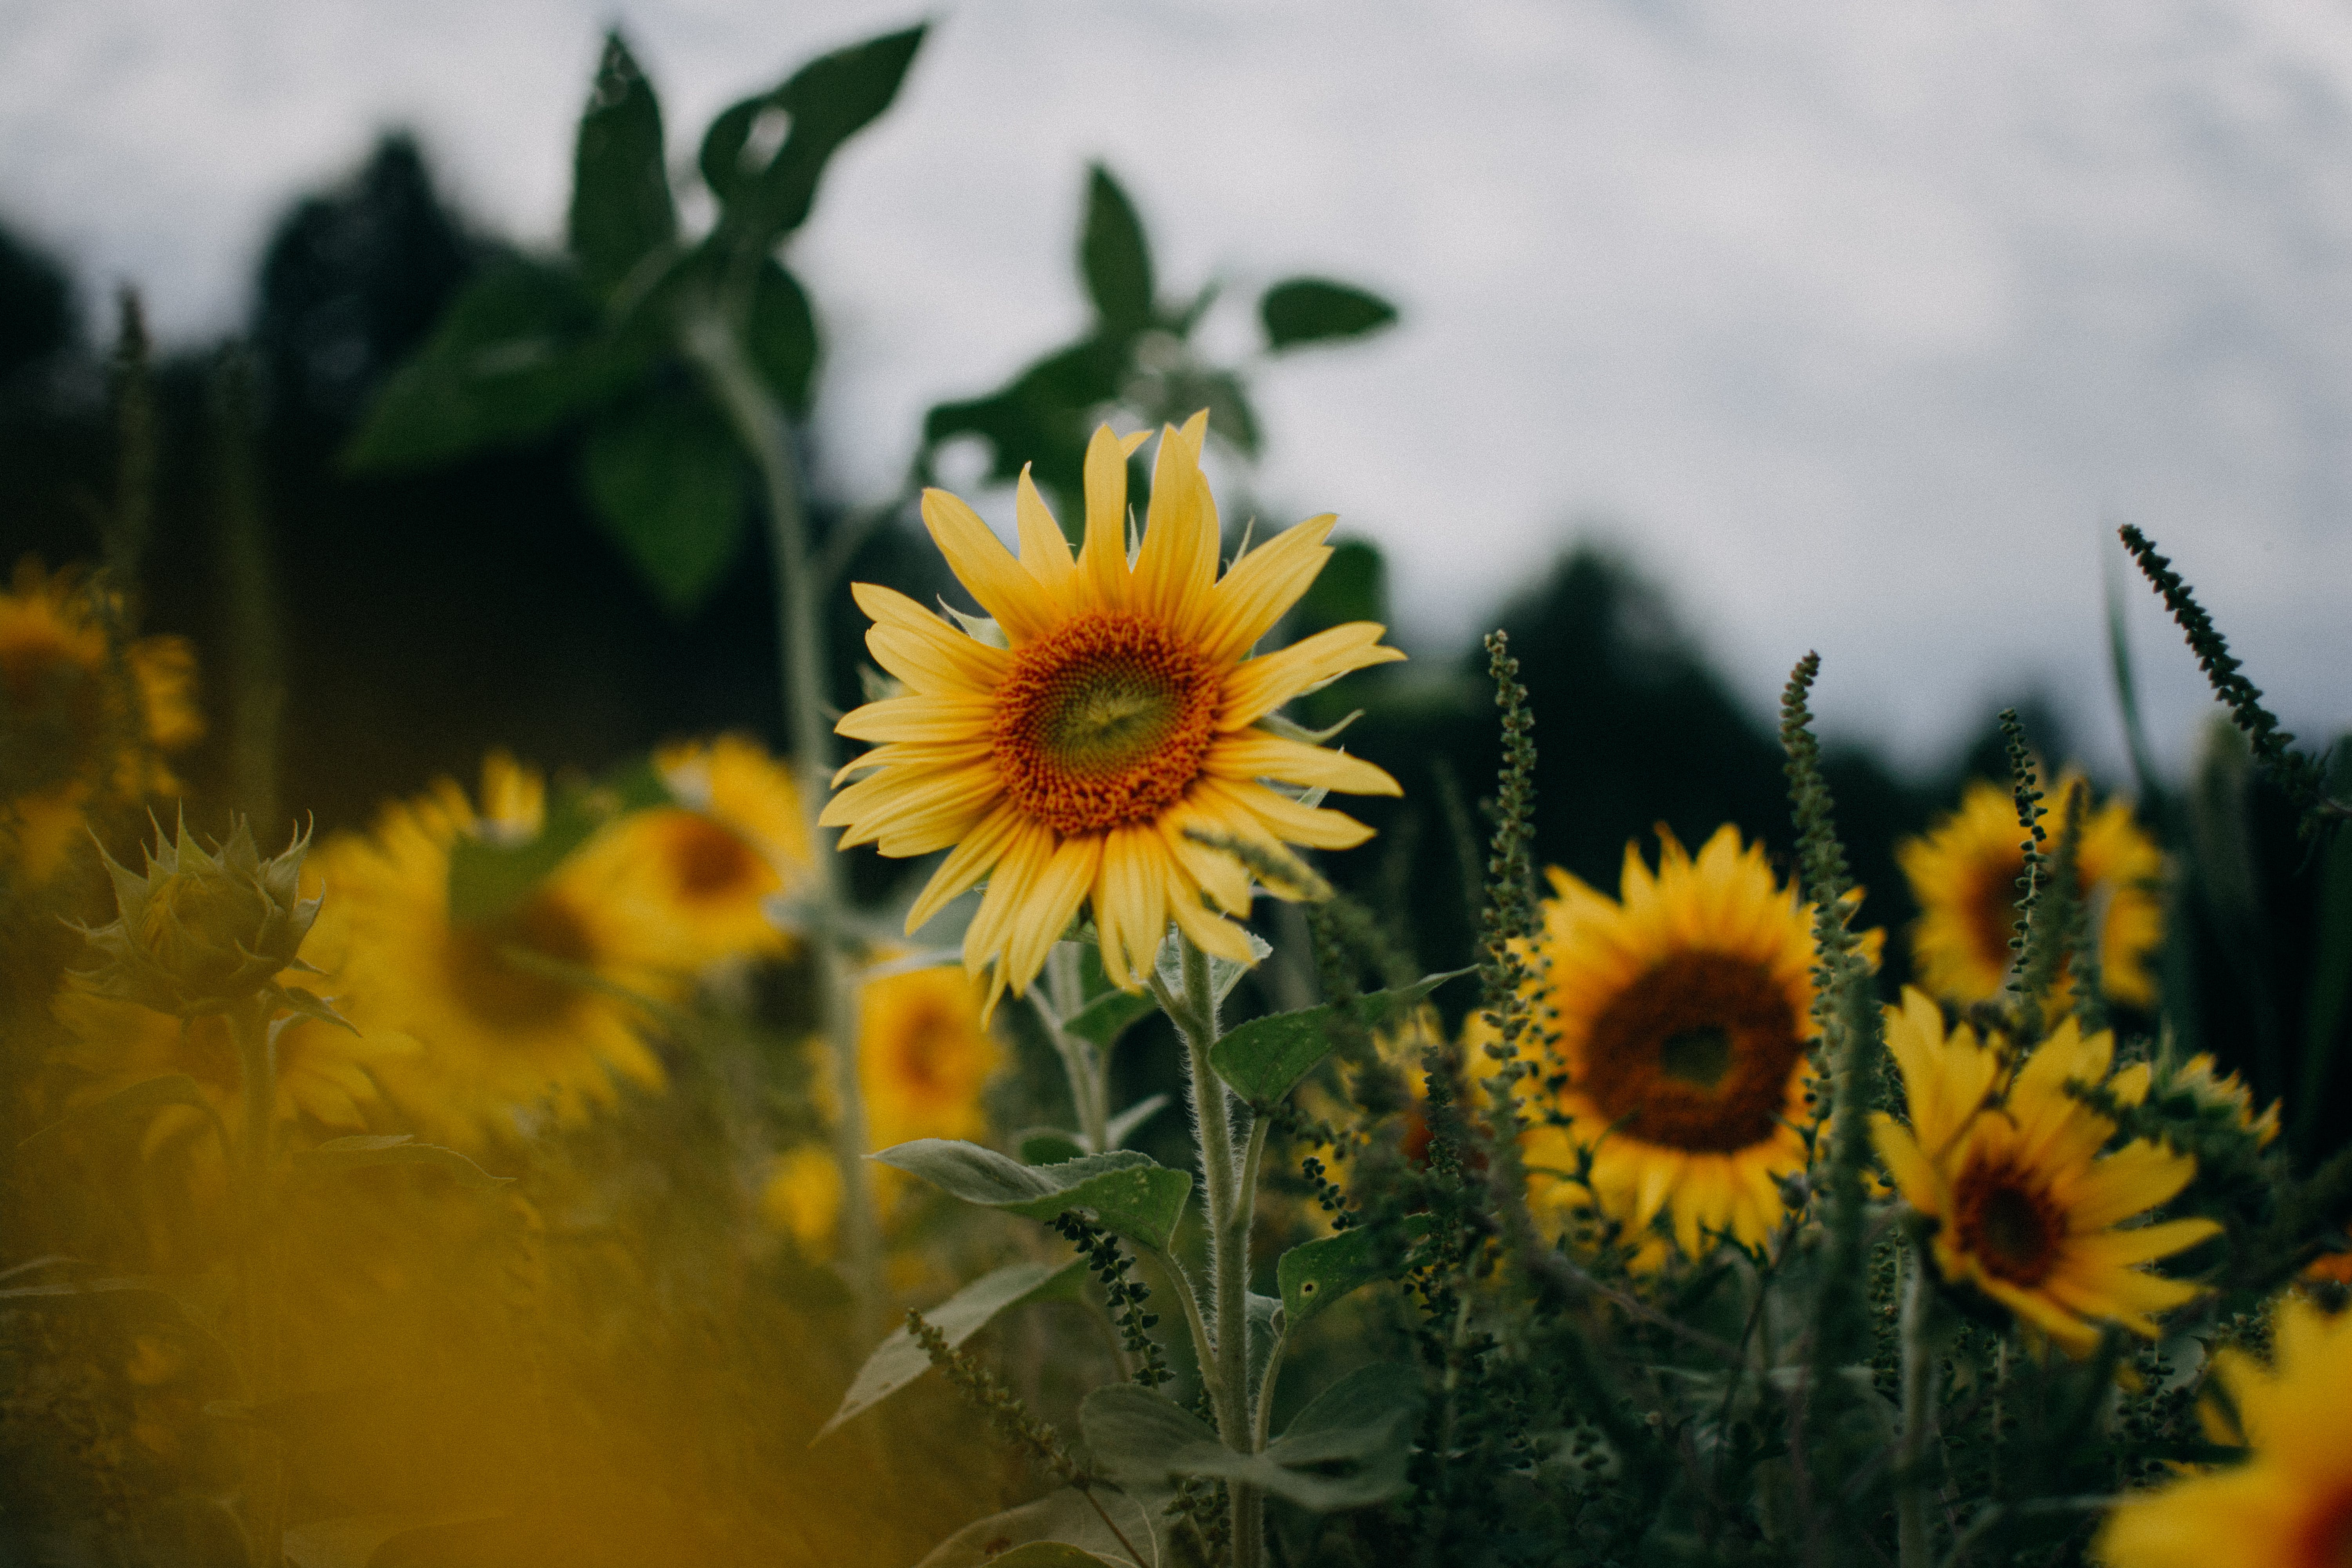 Sunflowers In Shallow Focus Lens